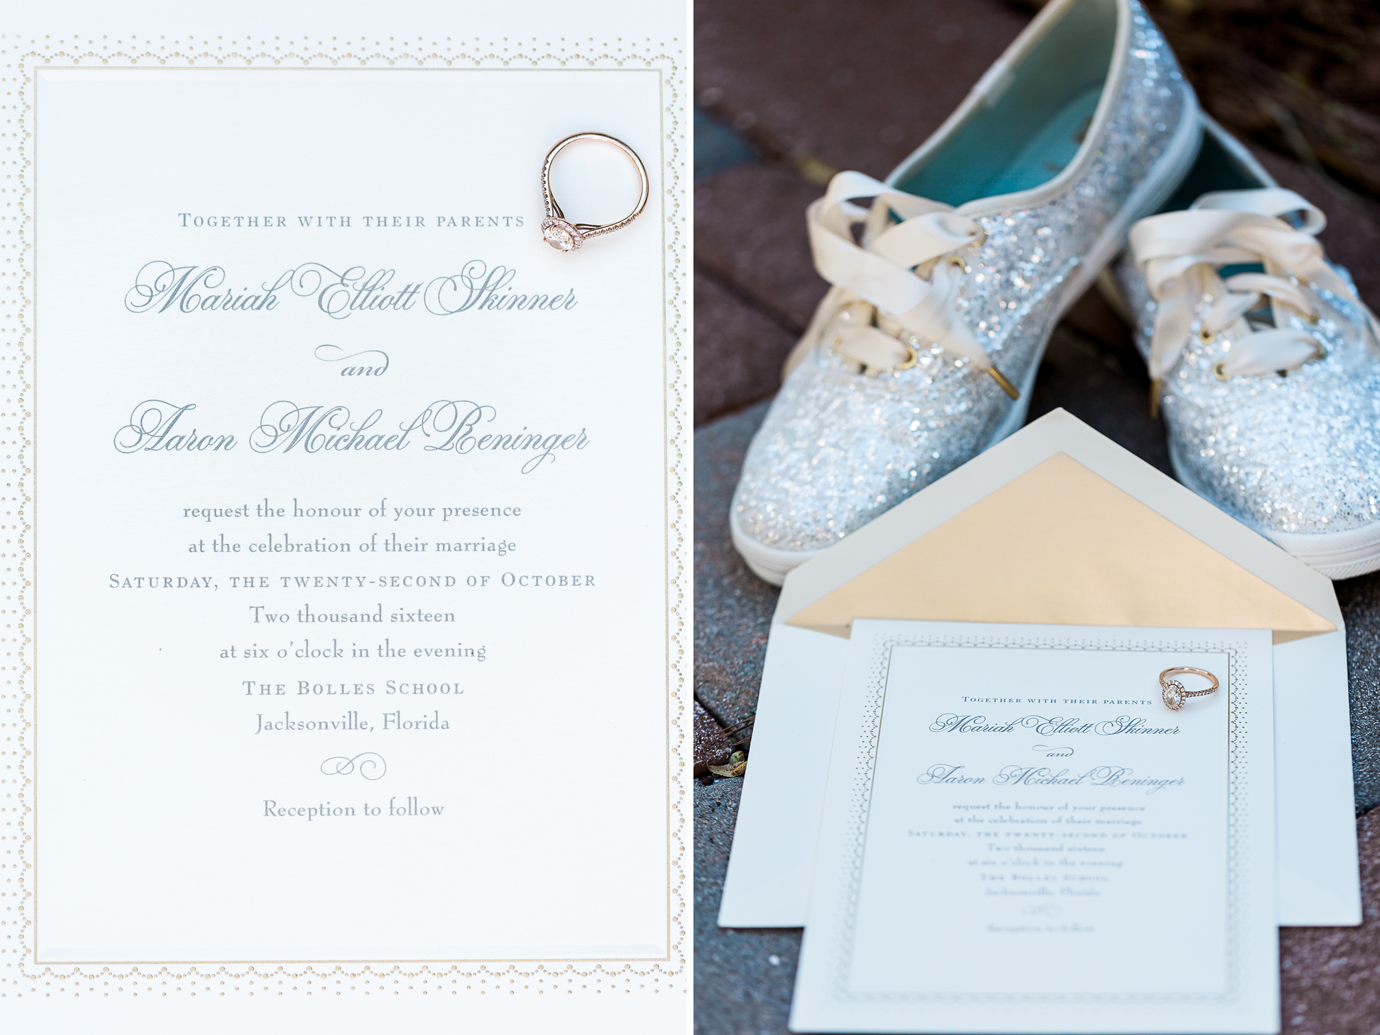 wedding details - invitation, rings and shoes.png